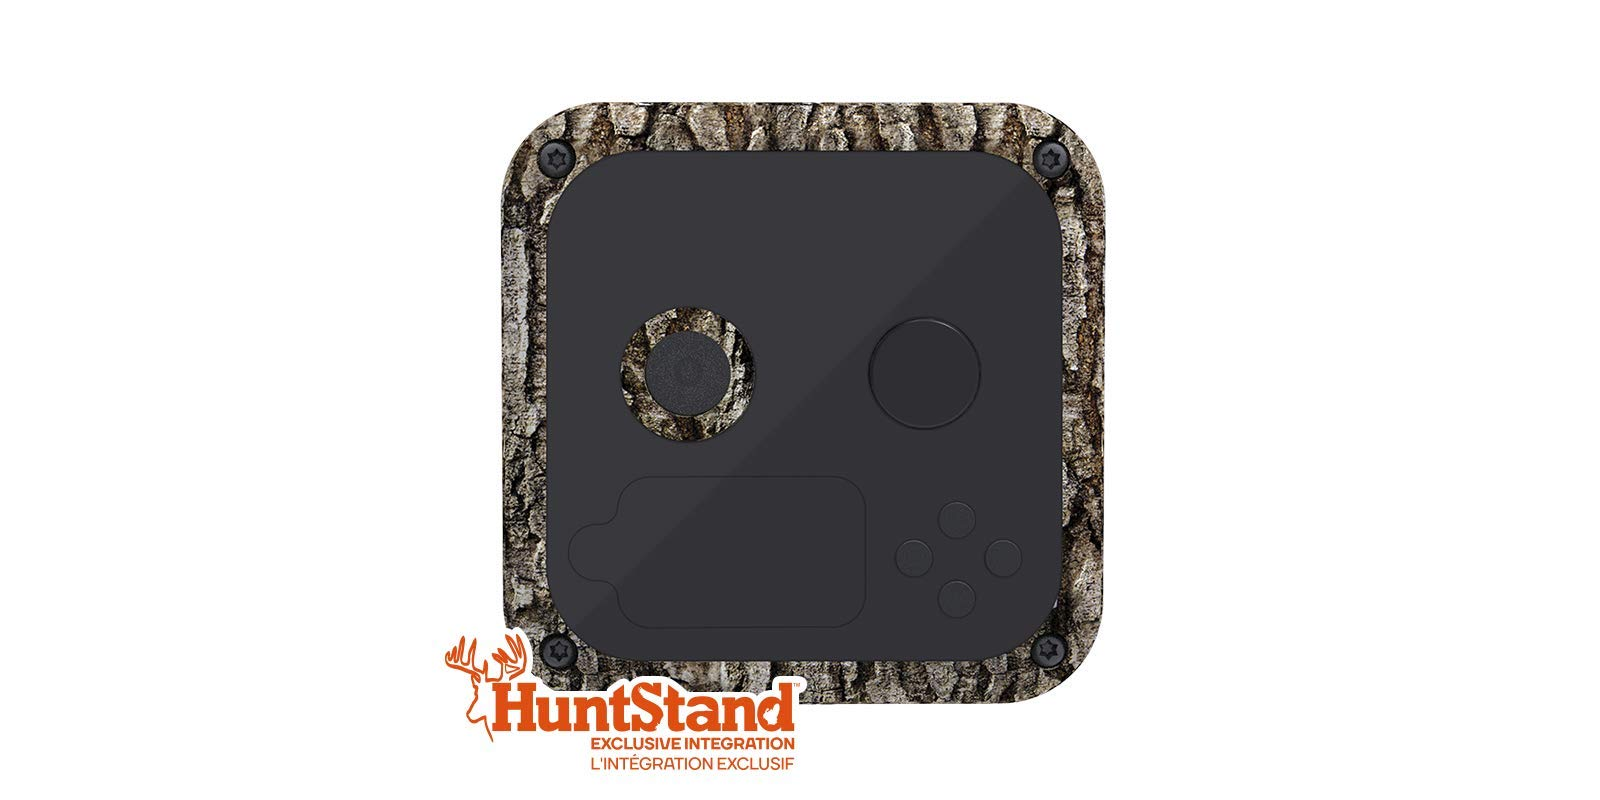 Wildgame Innovations Shadow Micro Cam 16 megapixel Lightsout Trail Camera, No Flash Scouting Camera with Both Daytime/Nighttime Video and Still Images, Wildlife and Security Purposes, Tru Bark Camo by Wildgame Innovations